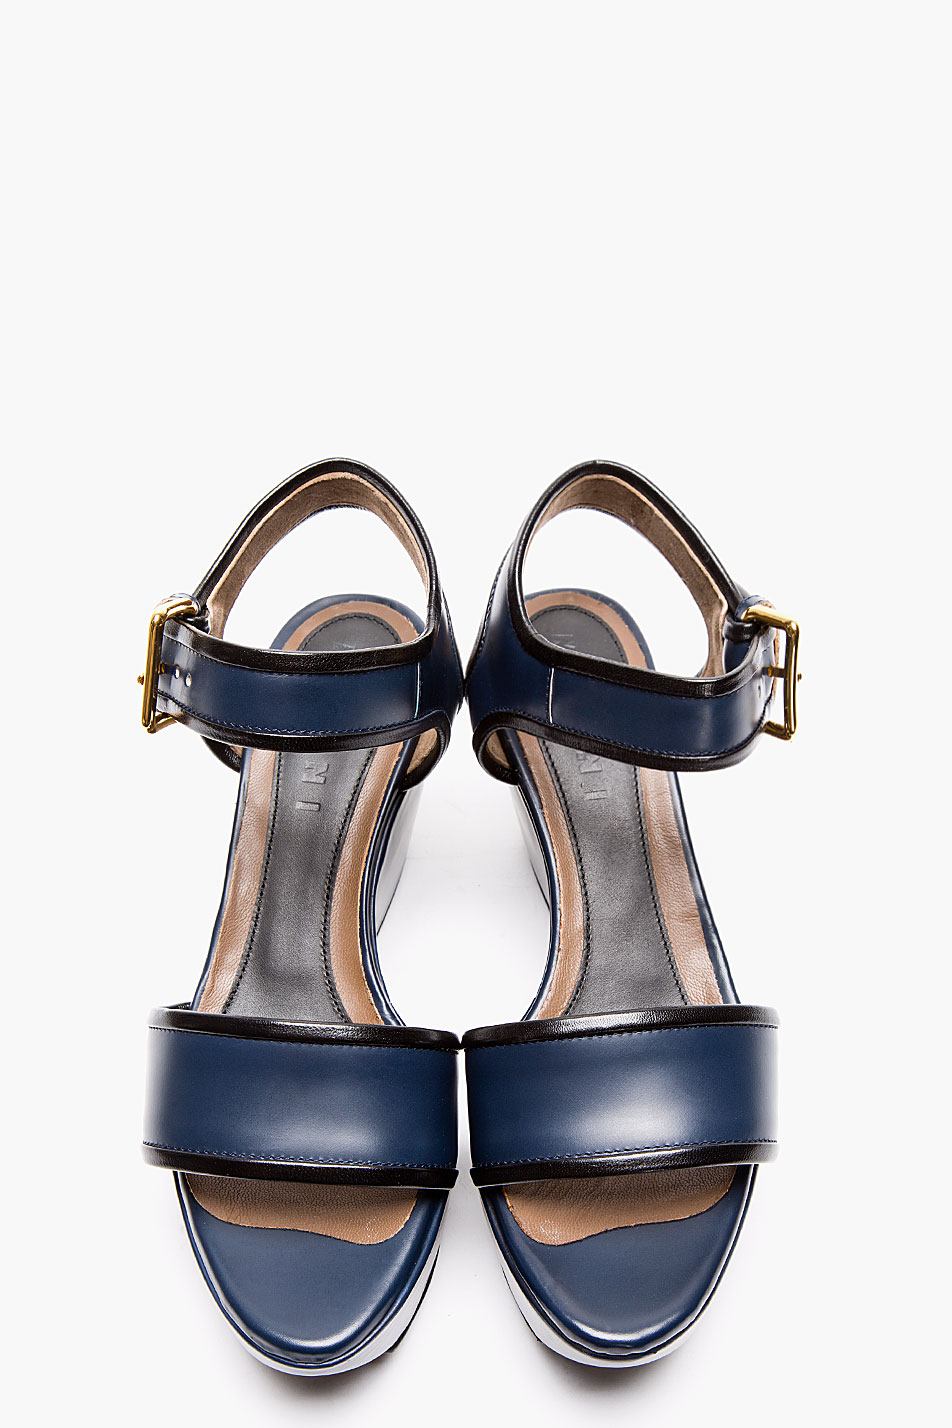 Lyst Marni Navy Leather Wedge Sandals In Blue